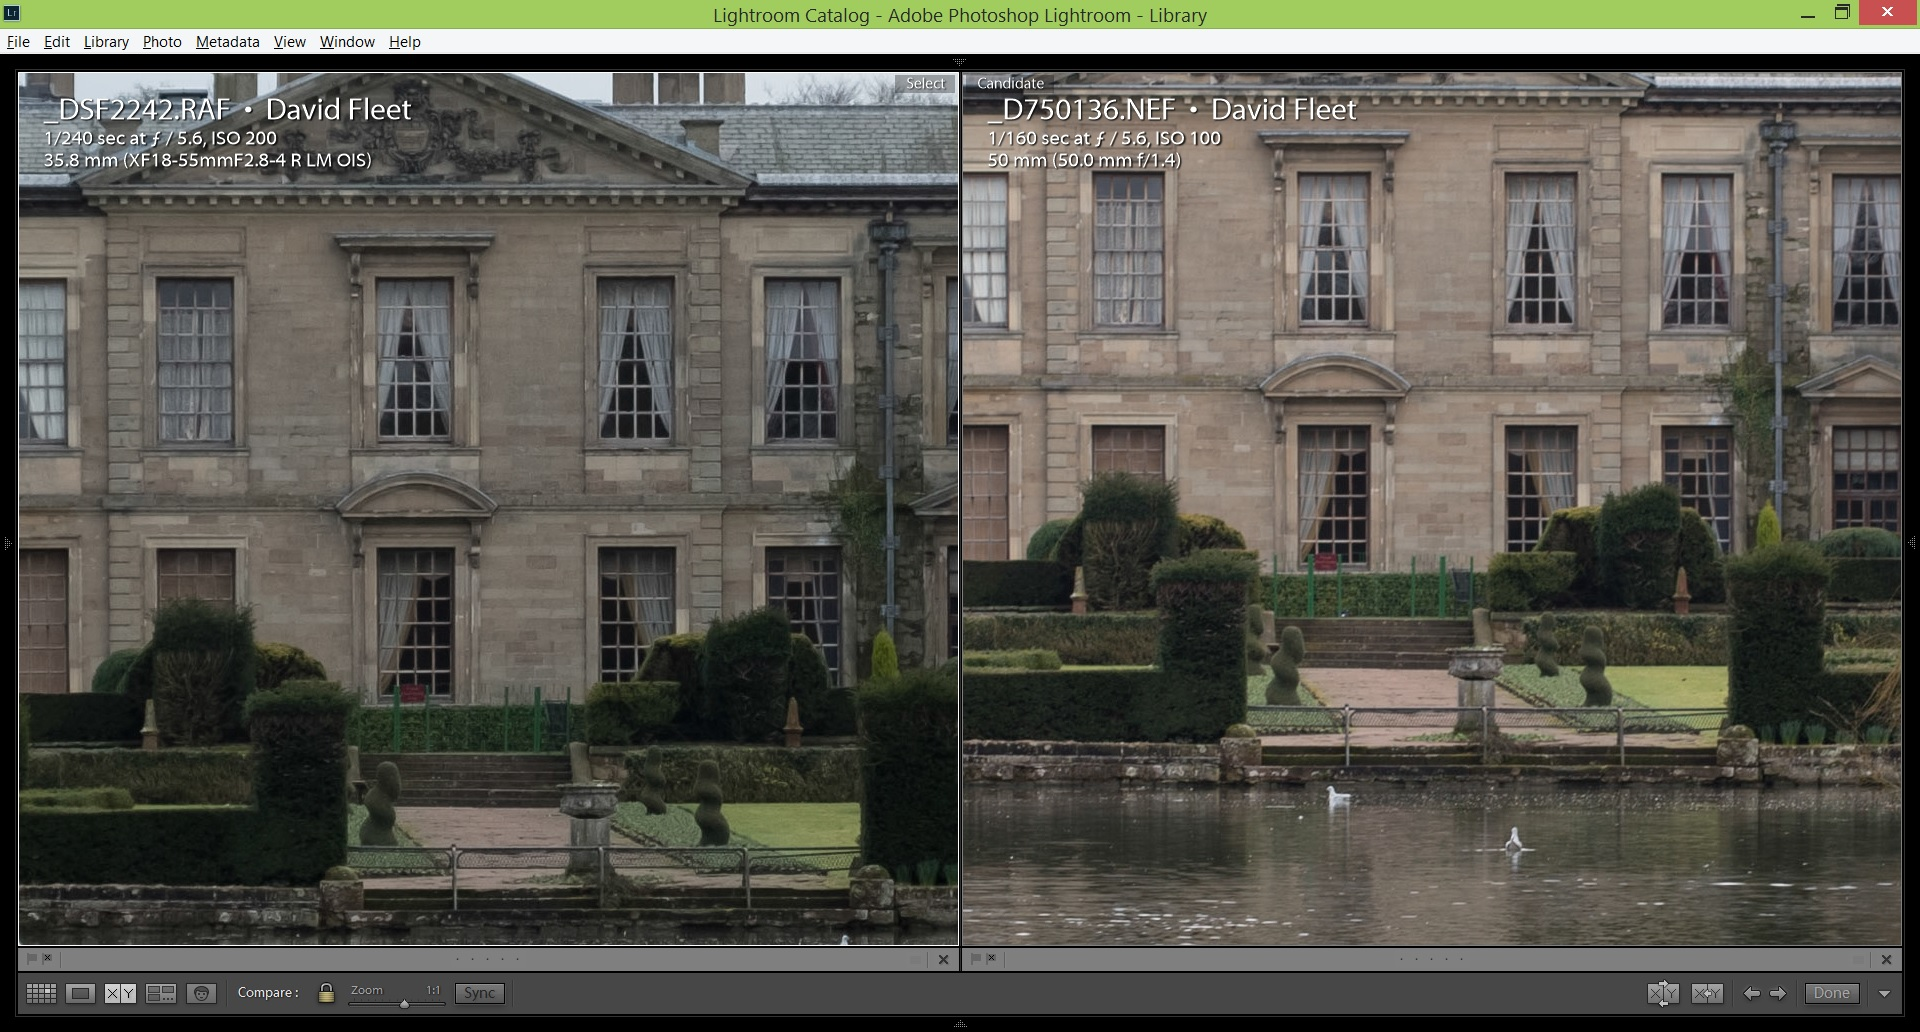 Fuji XT2 vs Nikon D750 image comparison of both photos zoomed in 100%